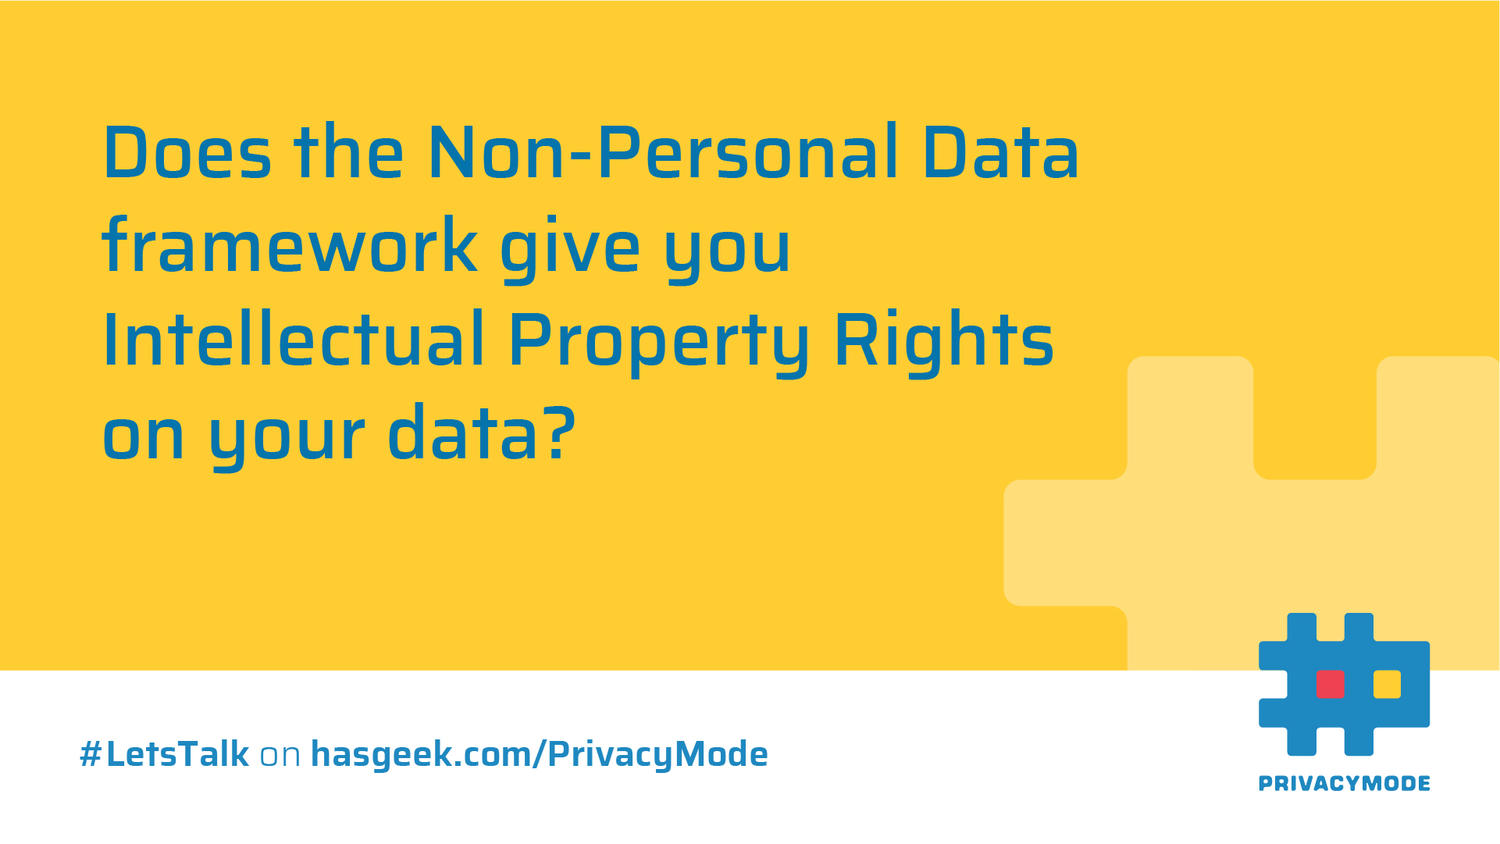 Impact of Non-Personal Data (NPD) framework on Startups, VC funding and Intellectual Property Rights